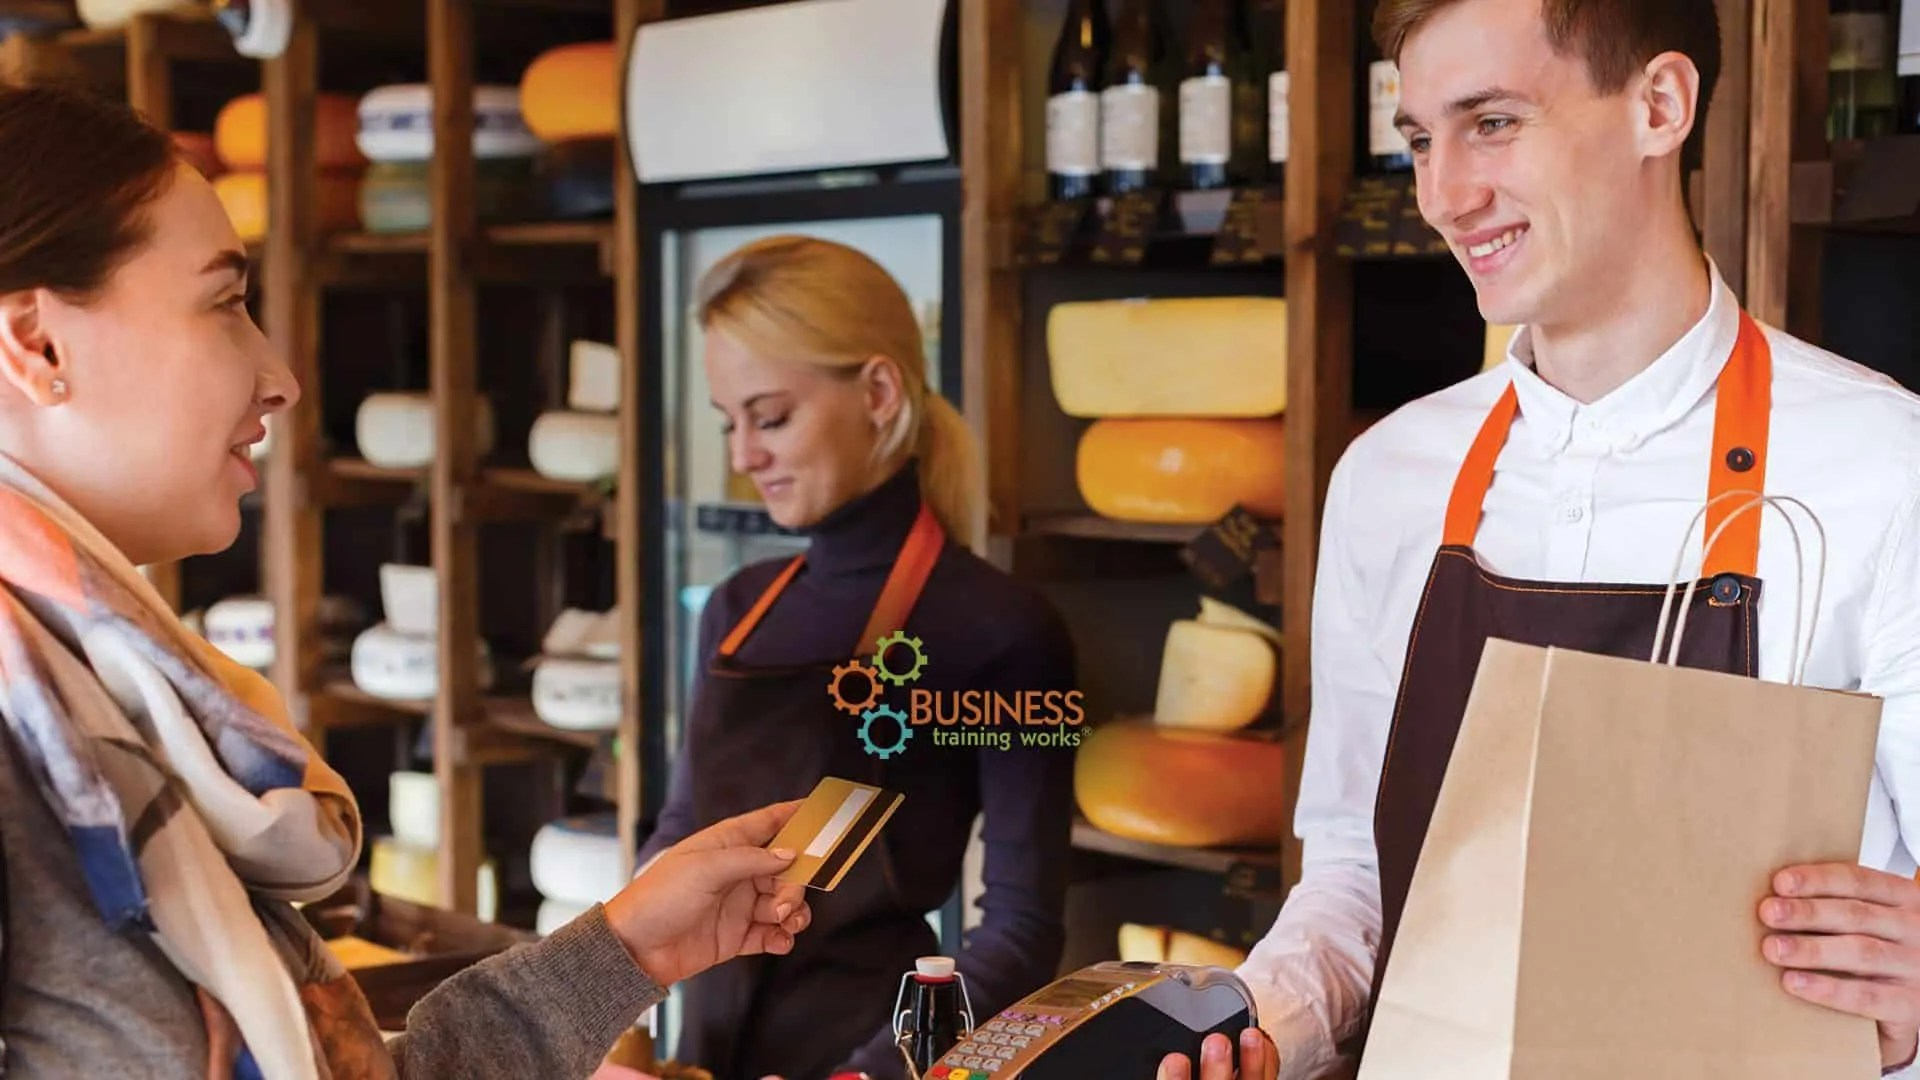 Customer Service Training for Retail Employees